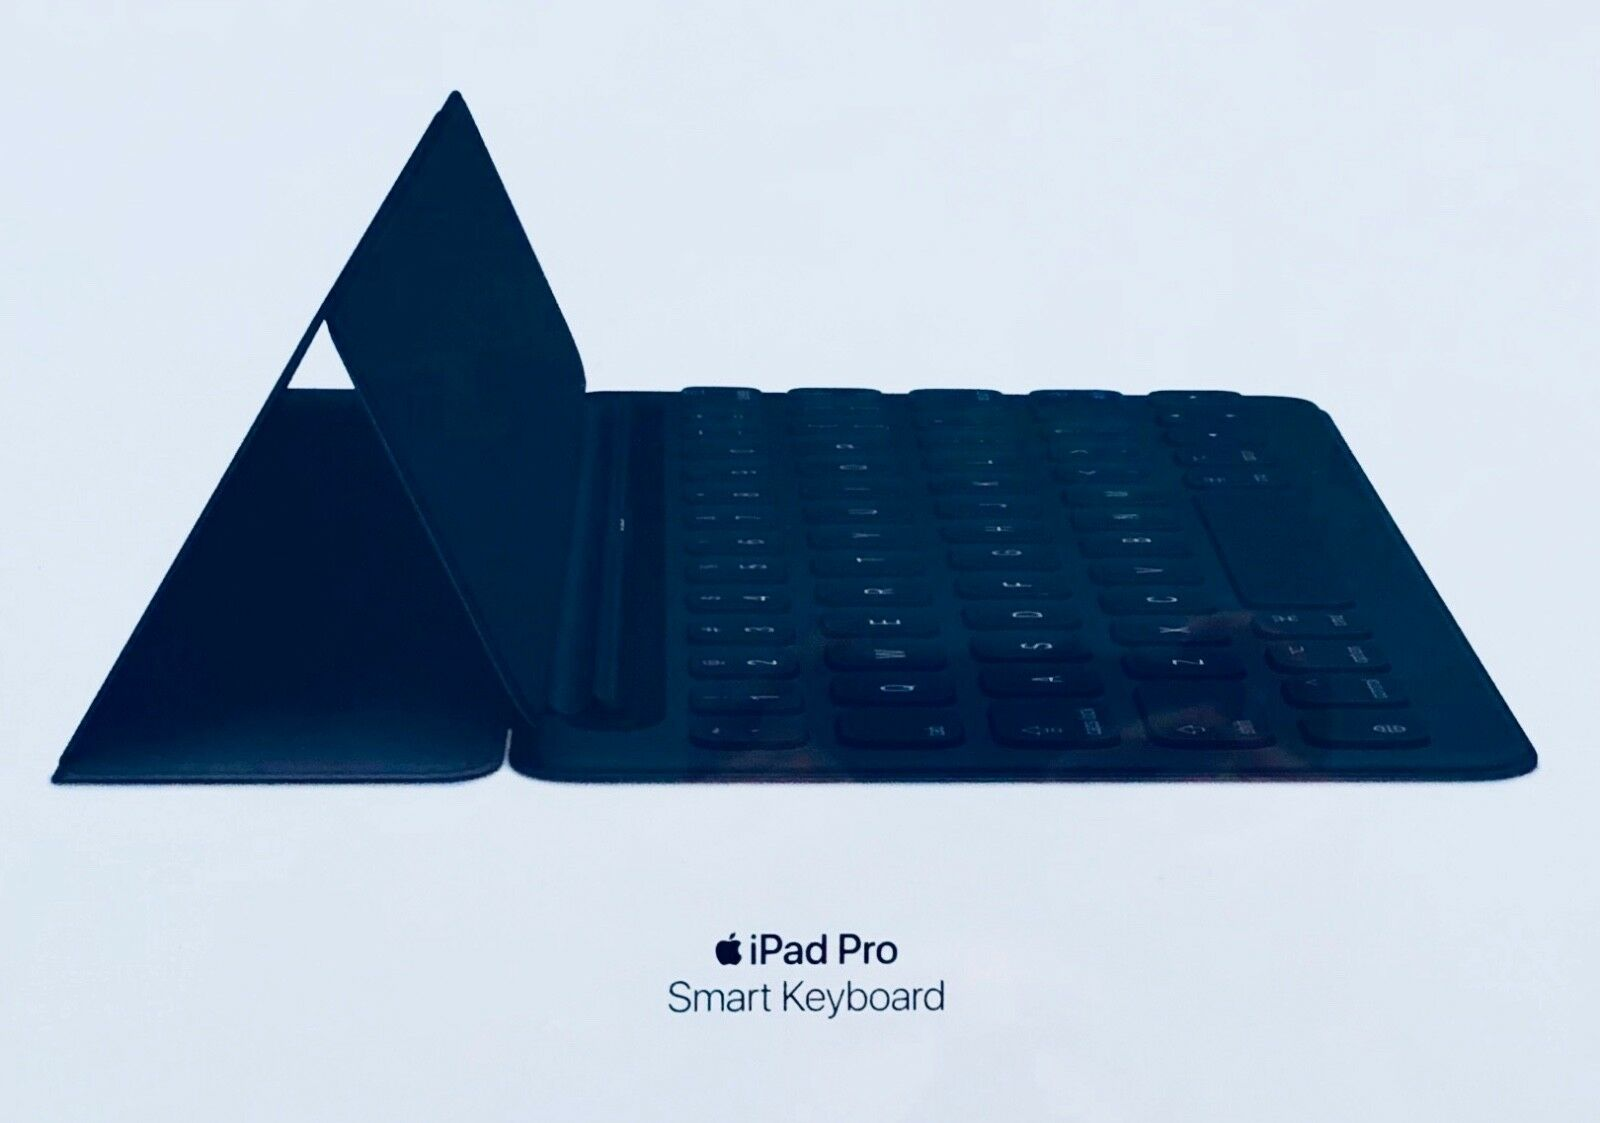 Apple Smart Keyboard Tastatur Für Ipad Pro 10.5 Mptl2da - Qwertz Layout 16